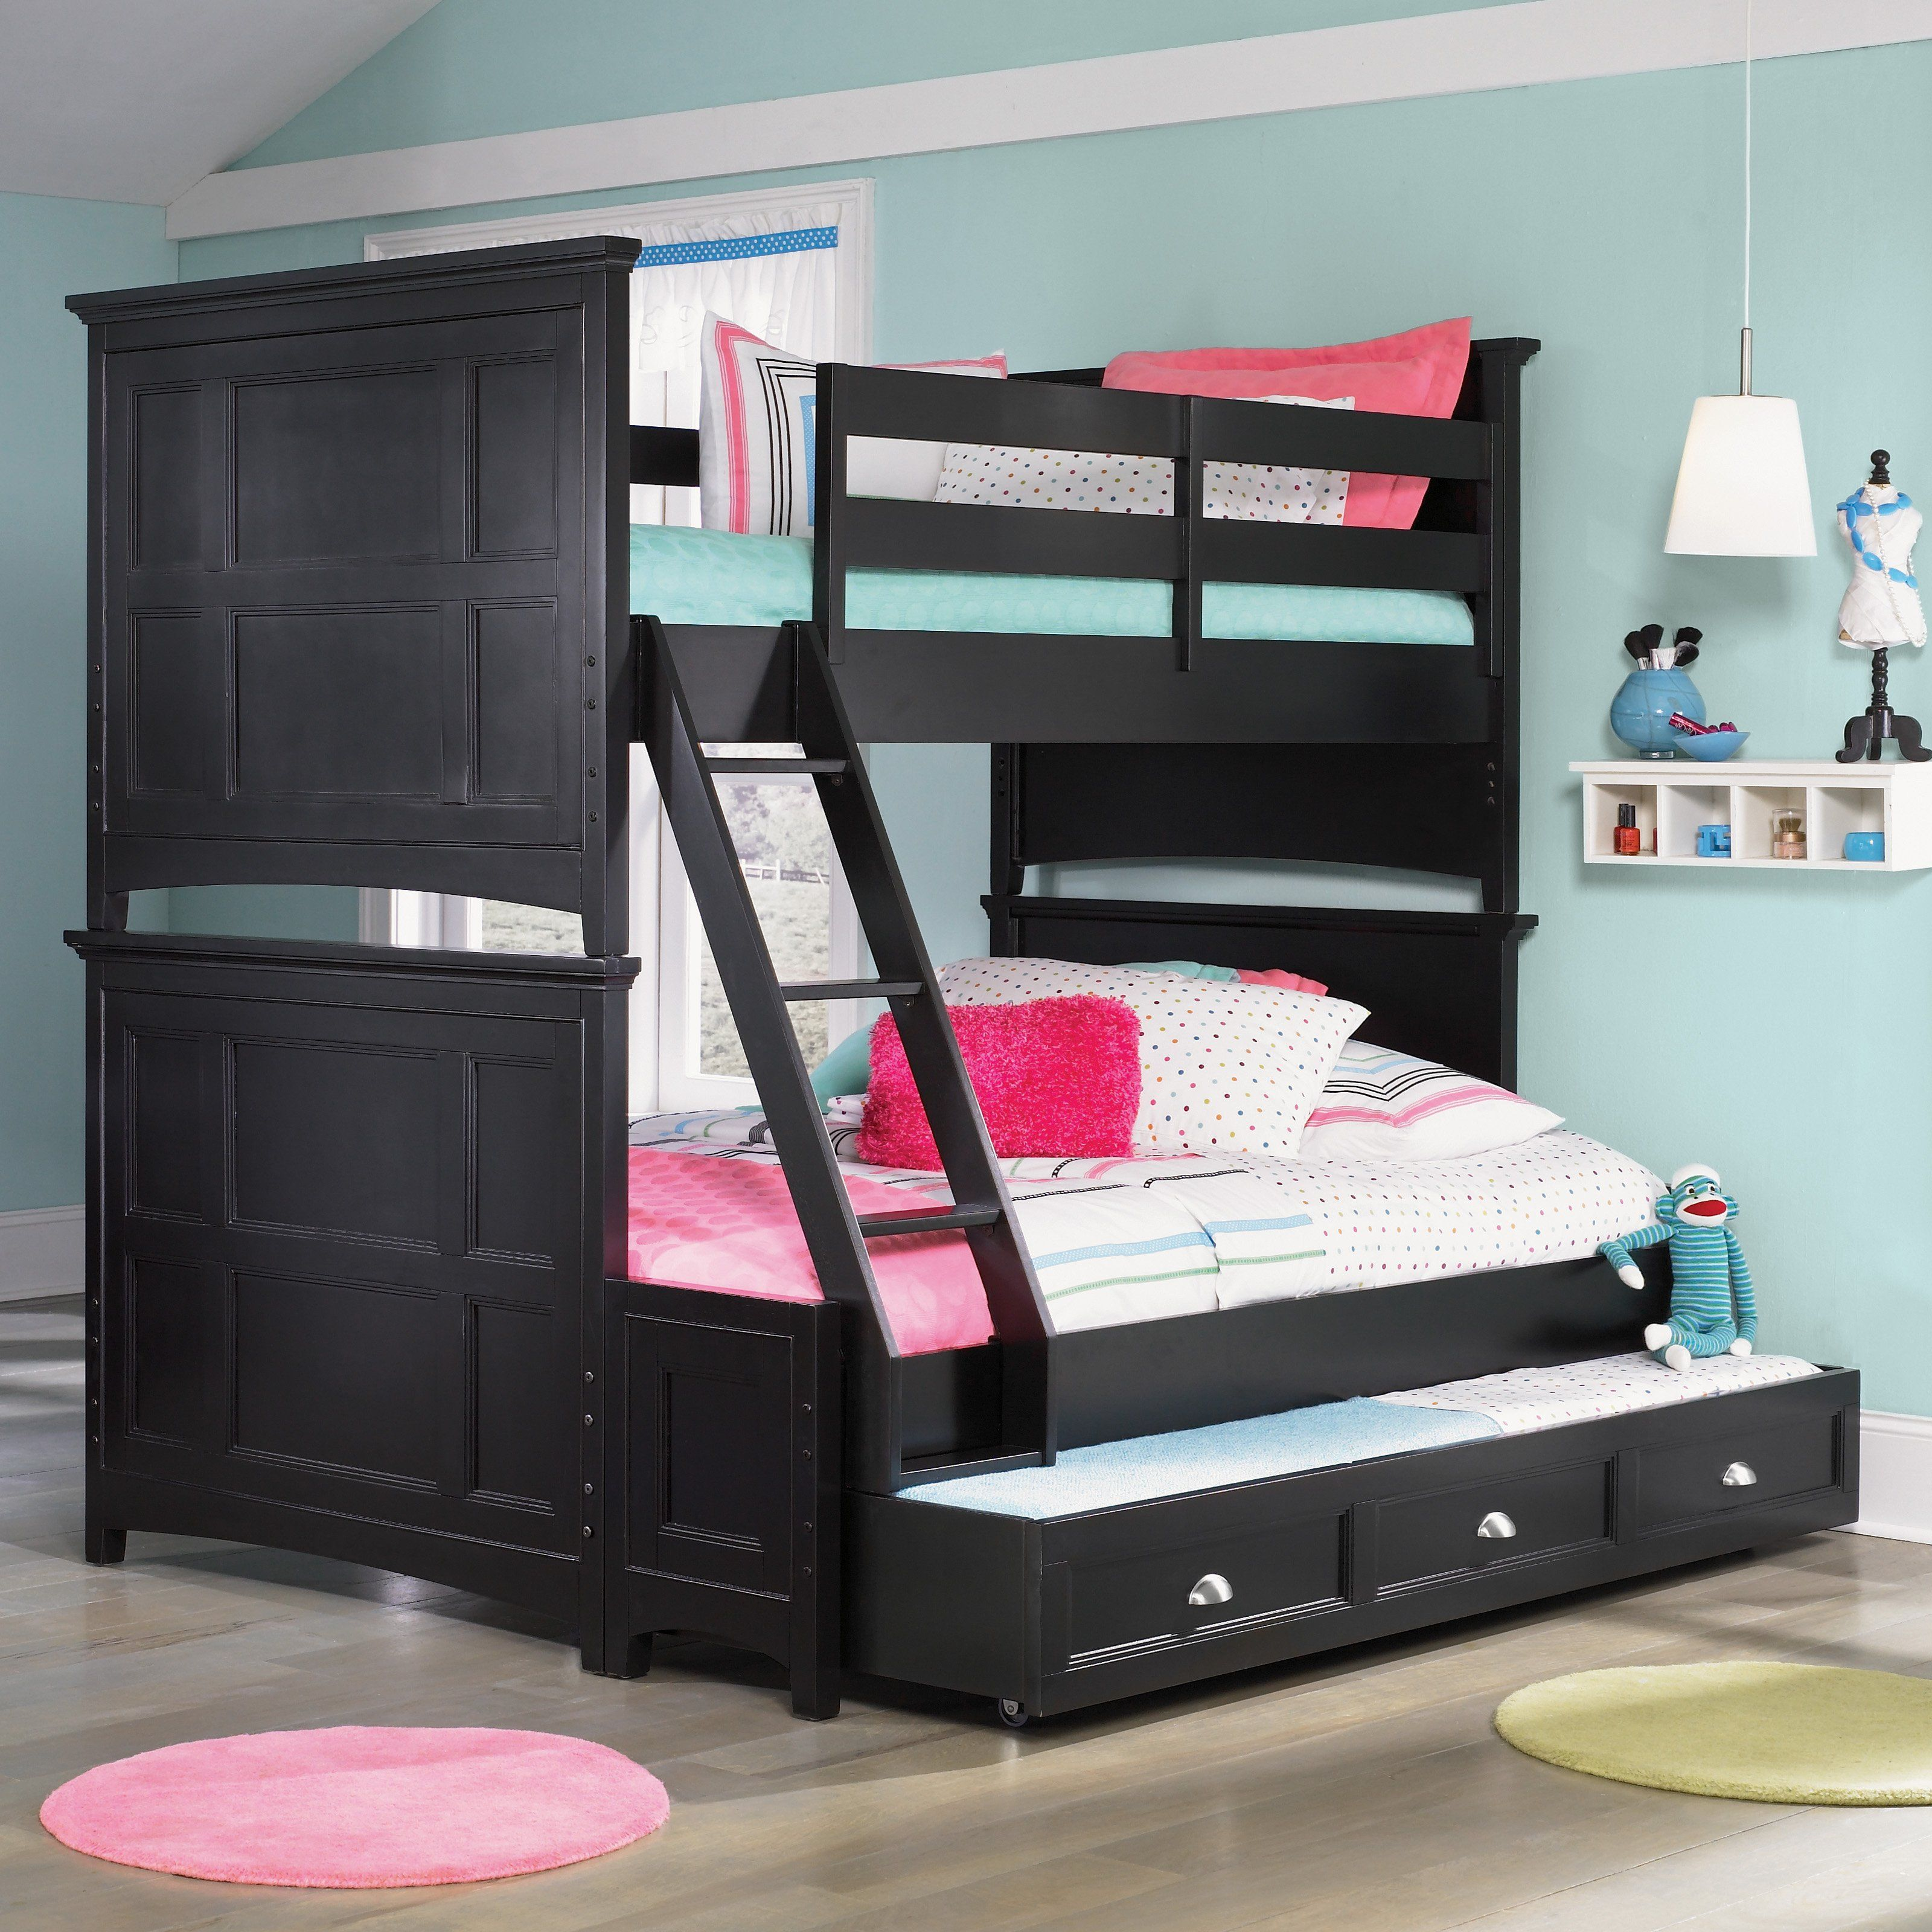 Have To Have It For AJu0027s Room, Love That It Is 3 Beds In One